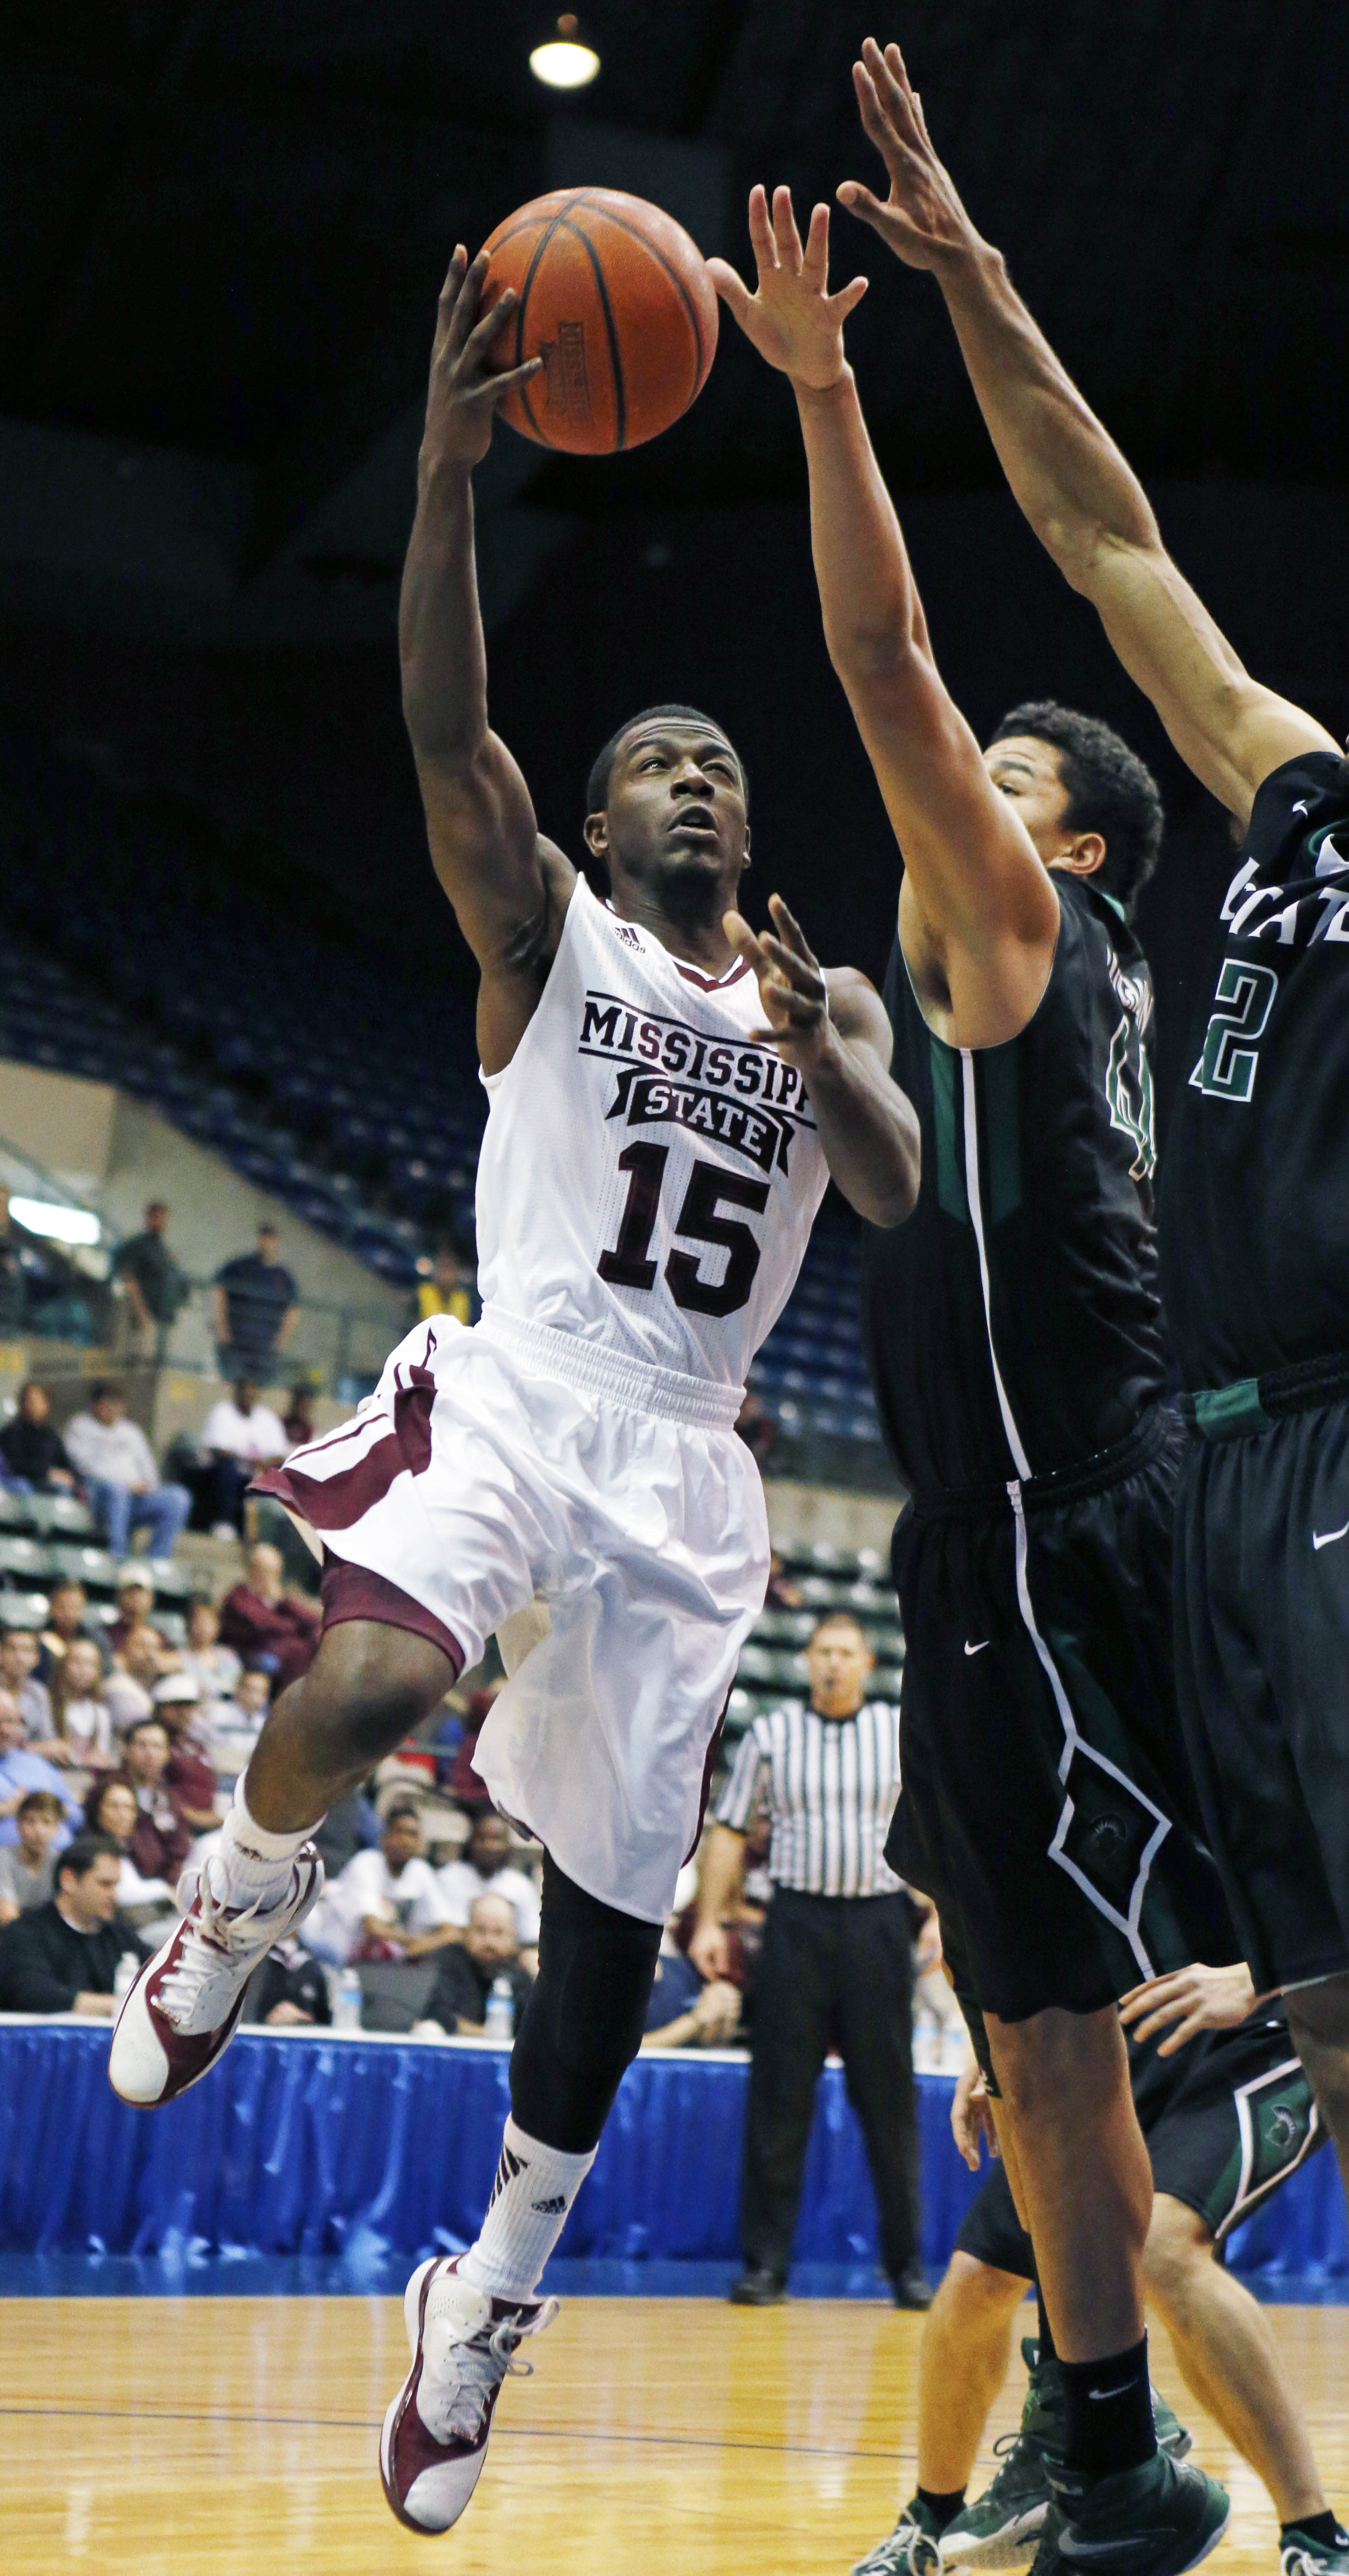 USC Upstate beats Mississippi State 53-51